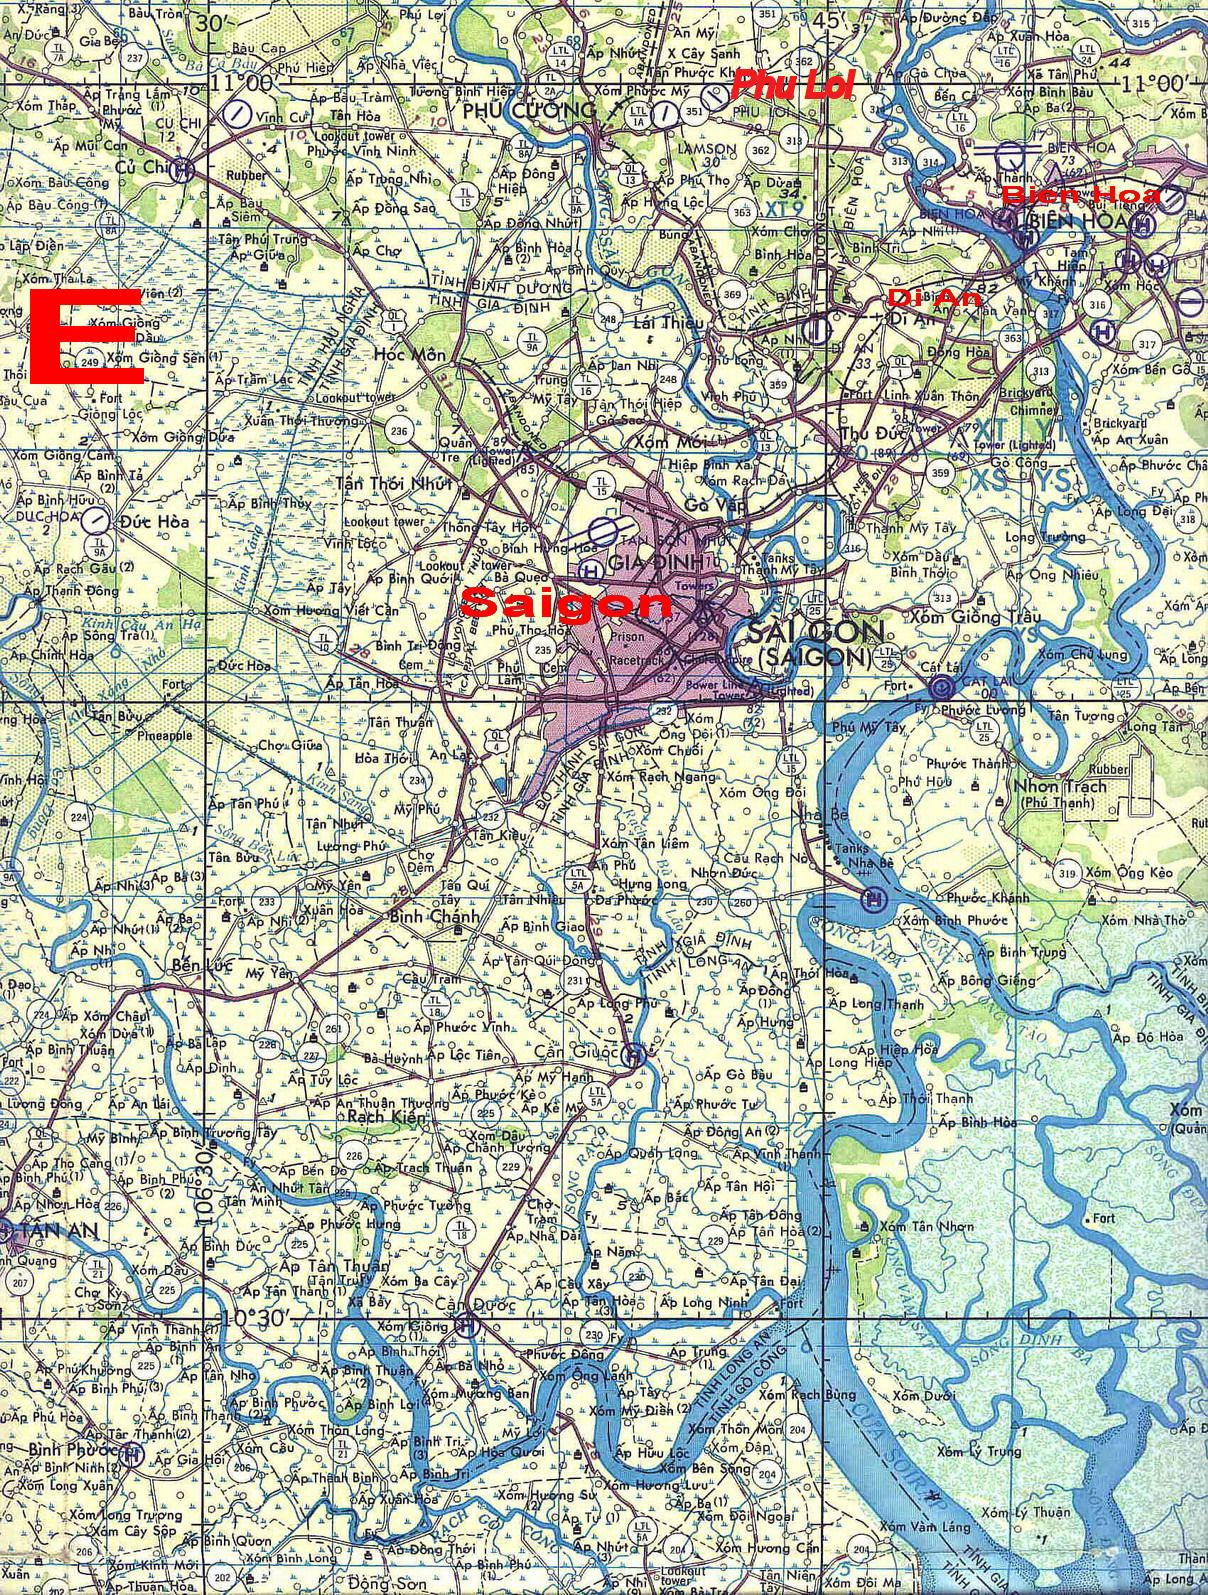 Phu Loi S Location Marked In Red North East Of Saigon